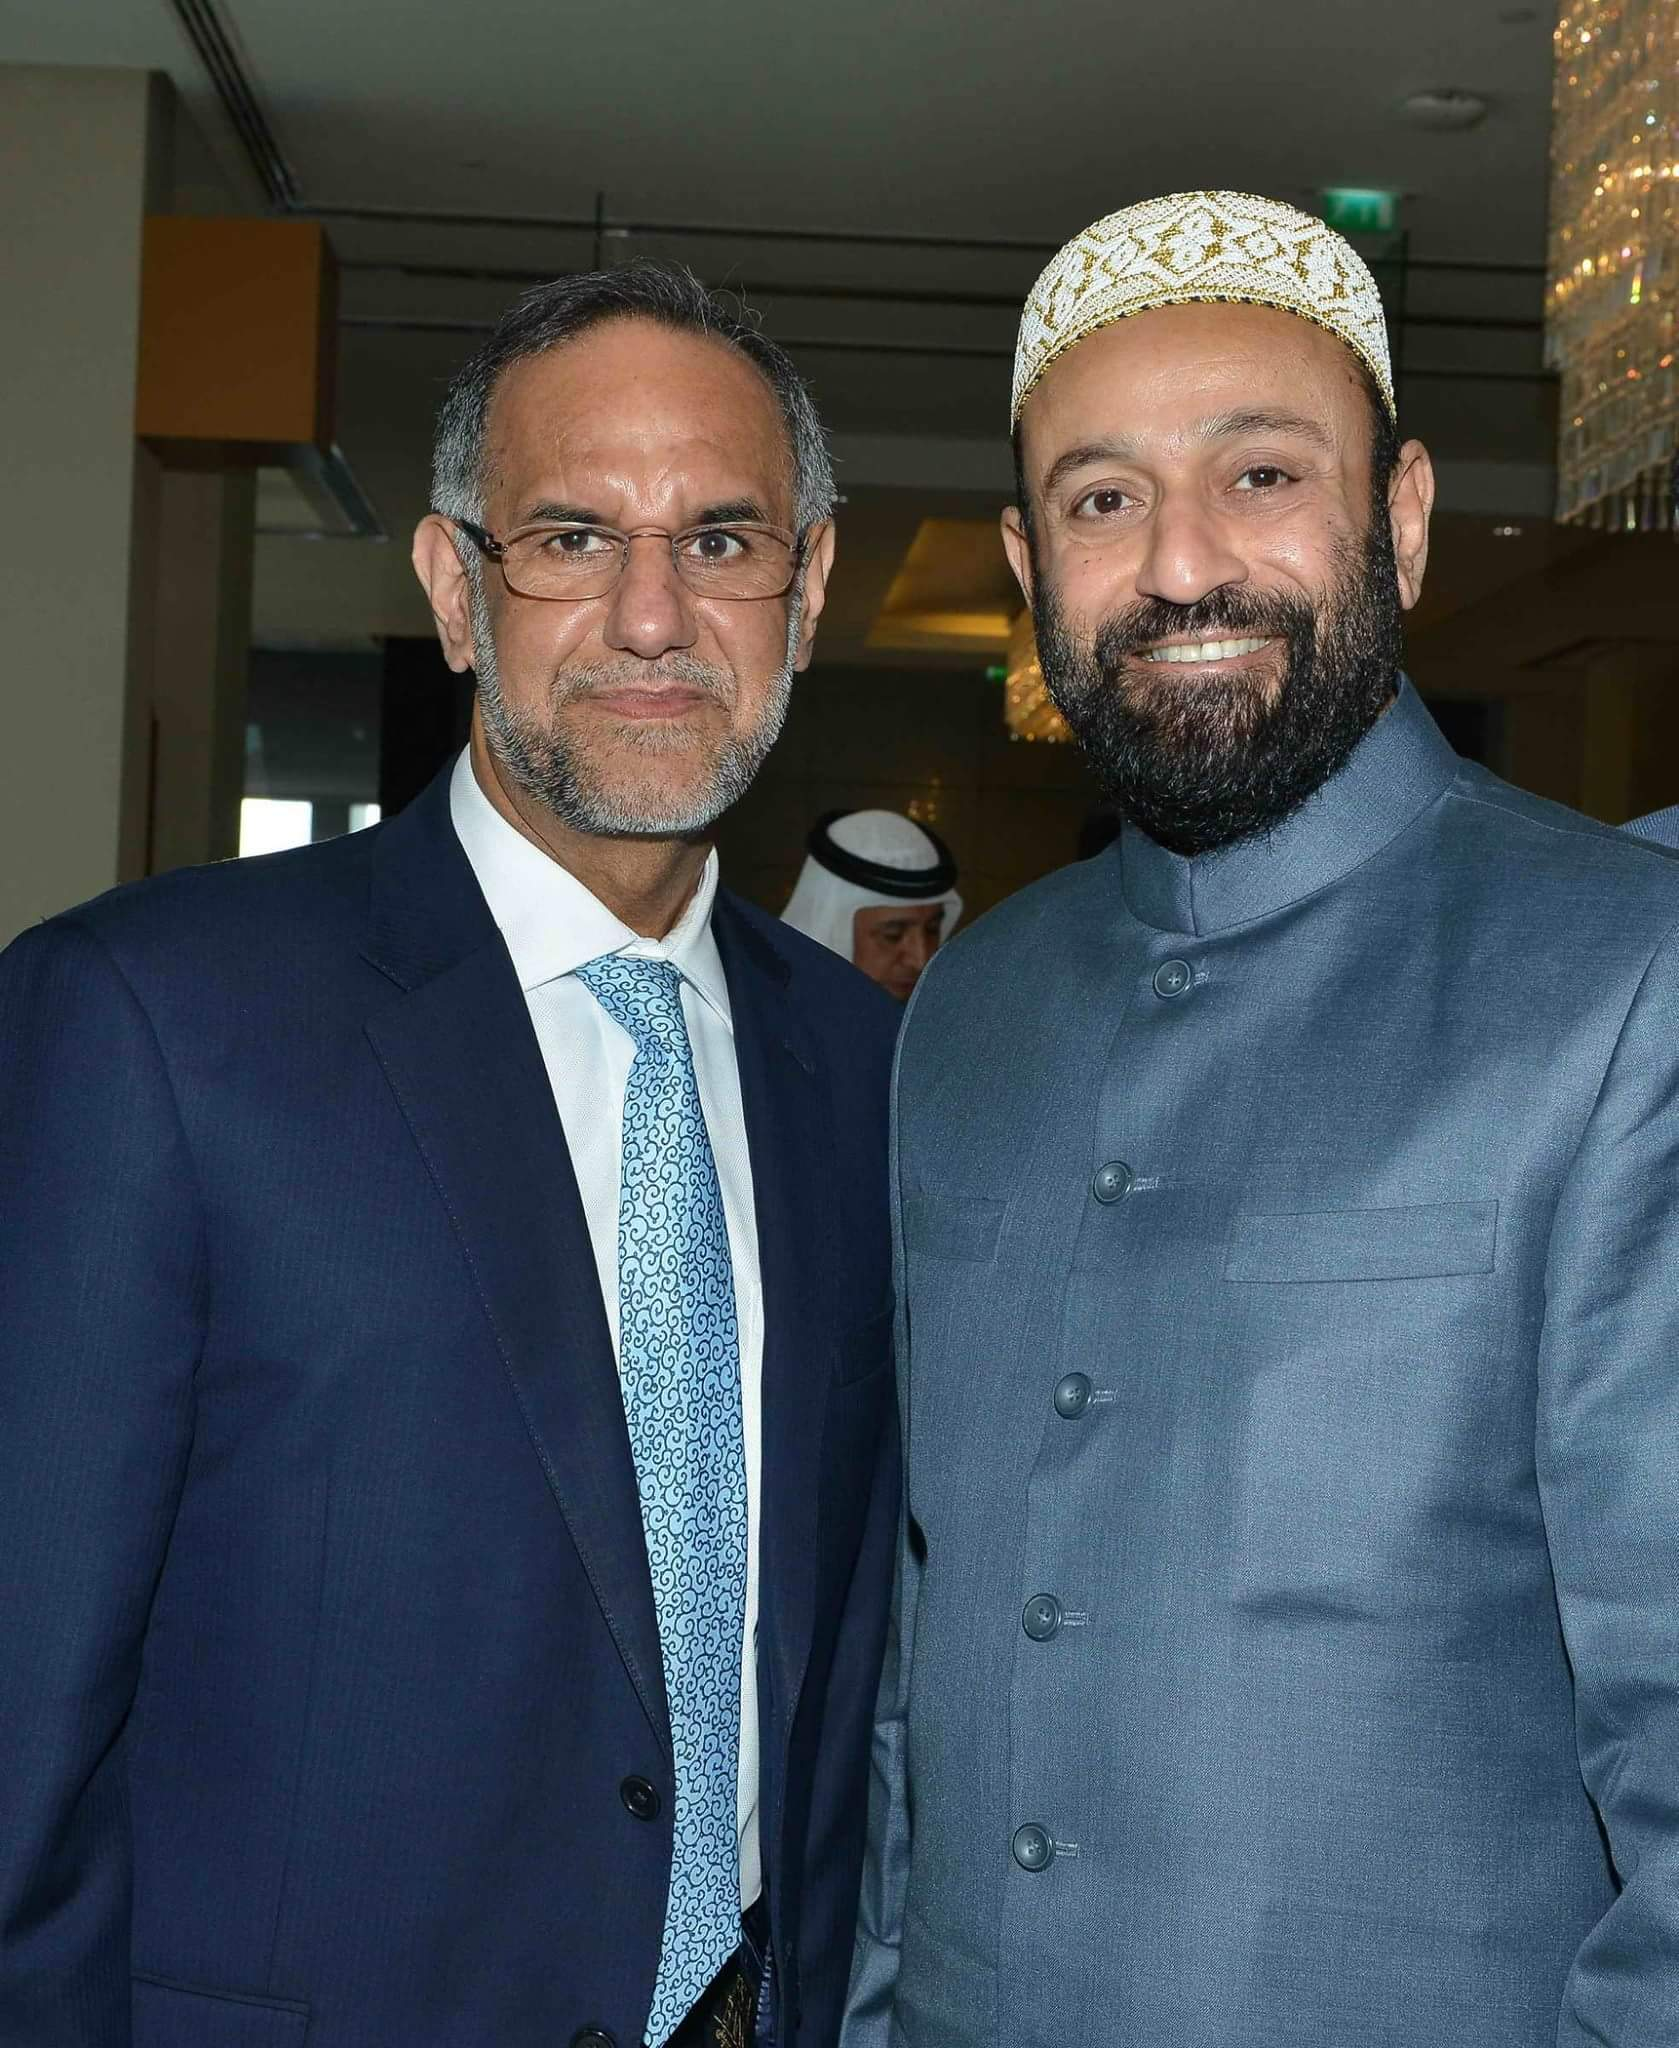 With H.E. Navdeep Singh Suri - High Commissioner of India to UAE.